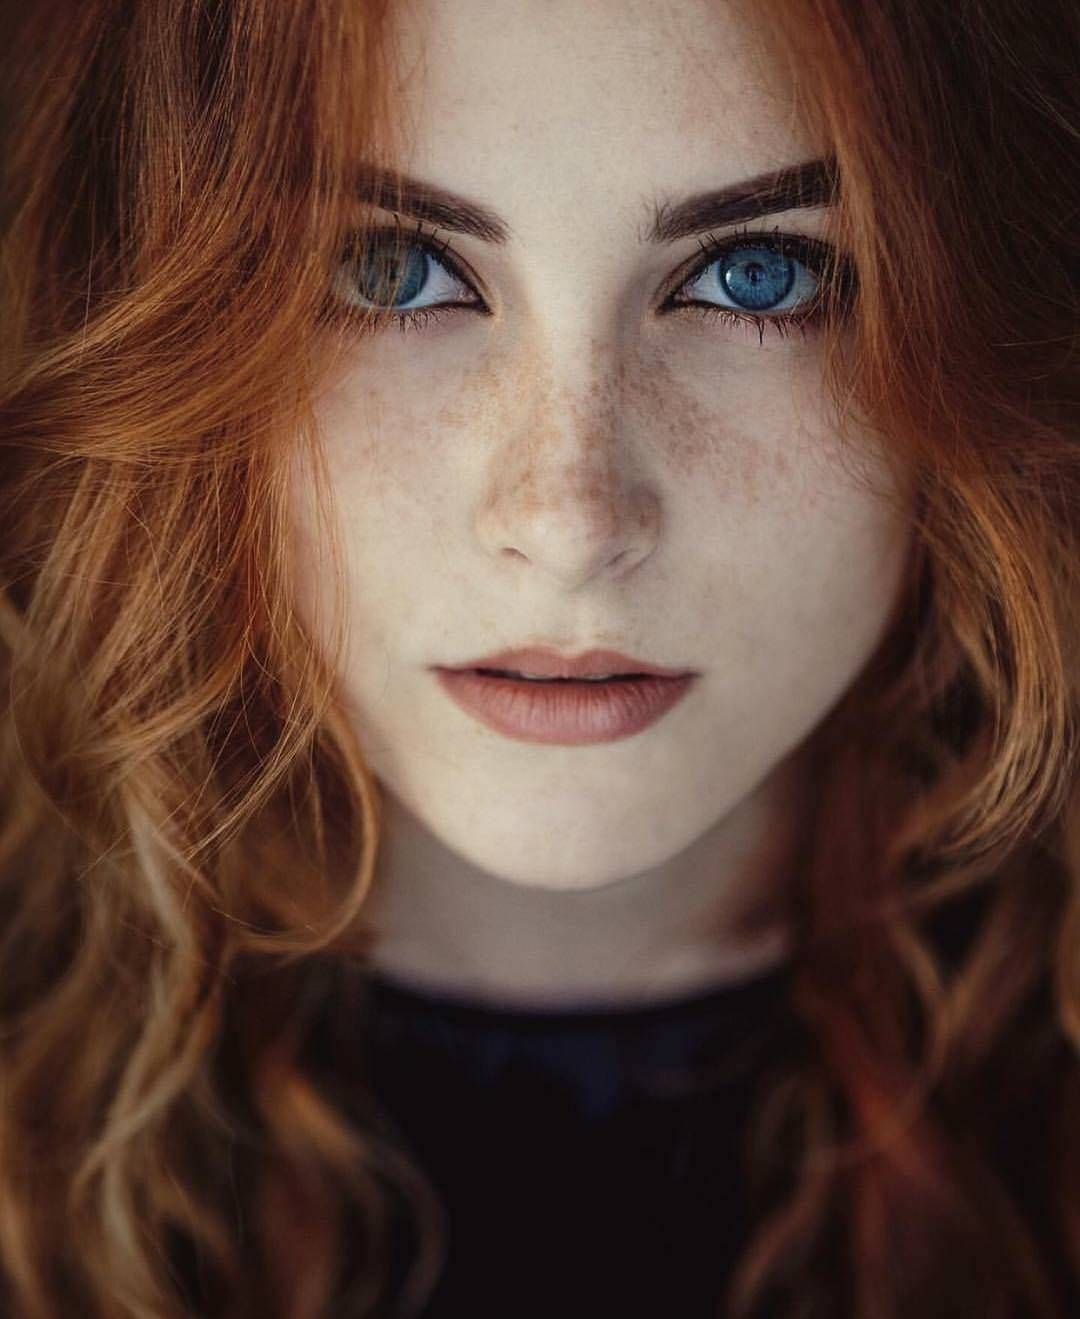 new post on sfwsexy | red hair woman, beautiful eyes, red hair